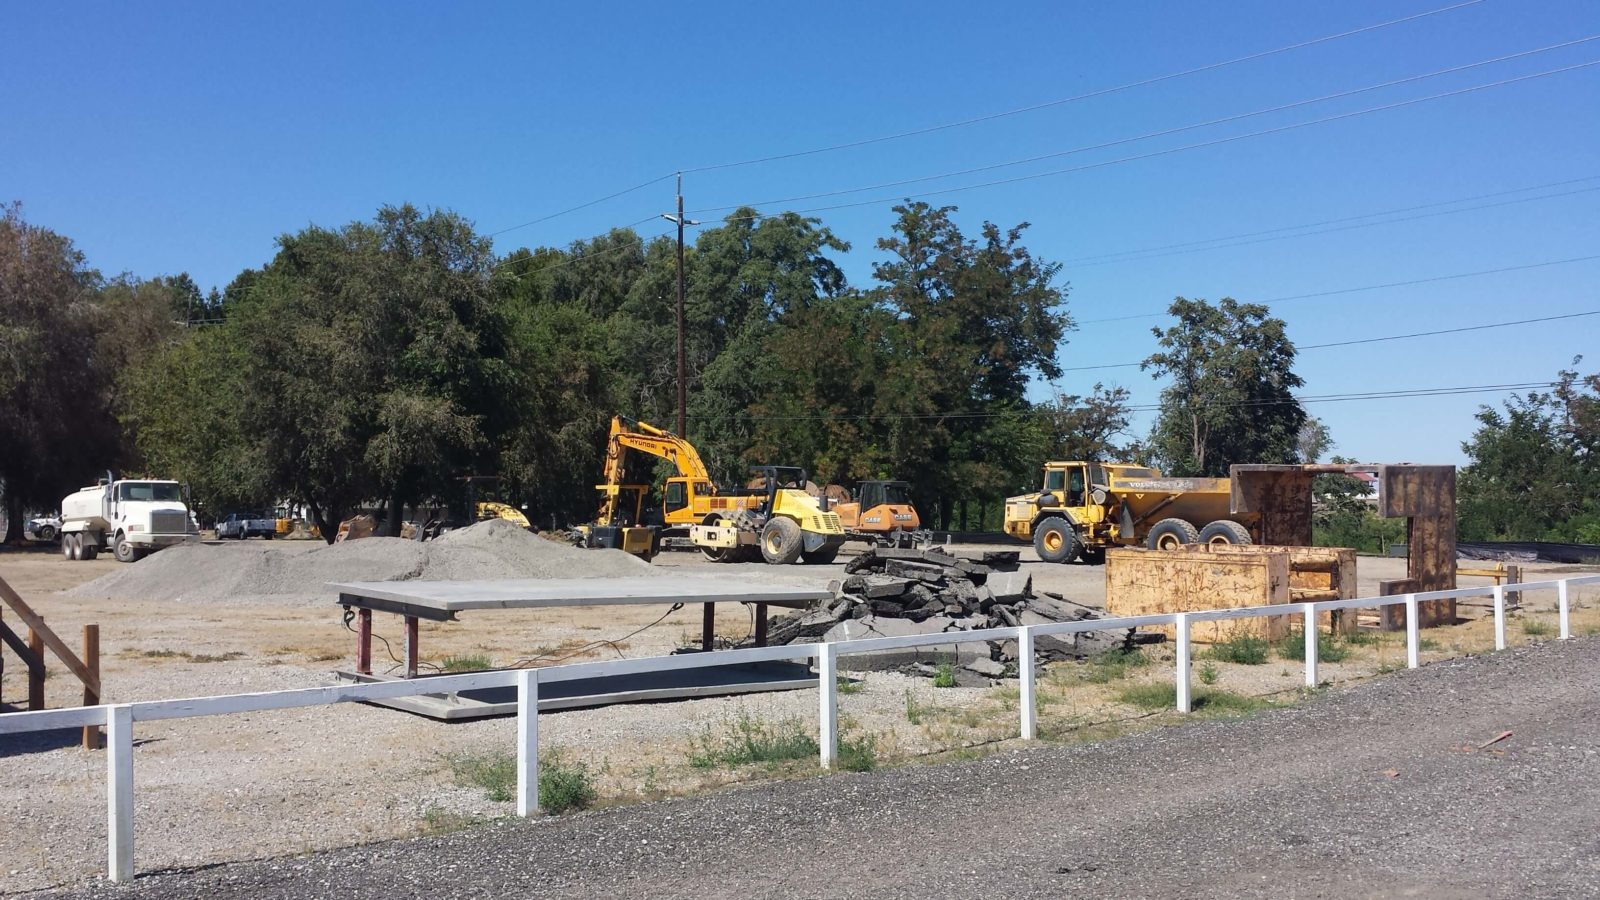 Heavy equipment and construction materials on site.